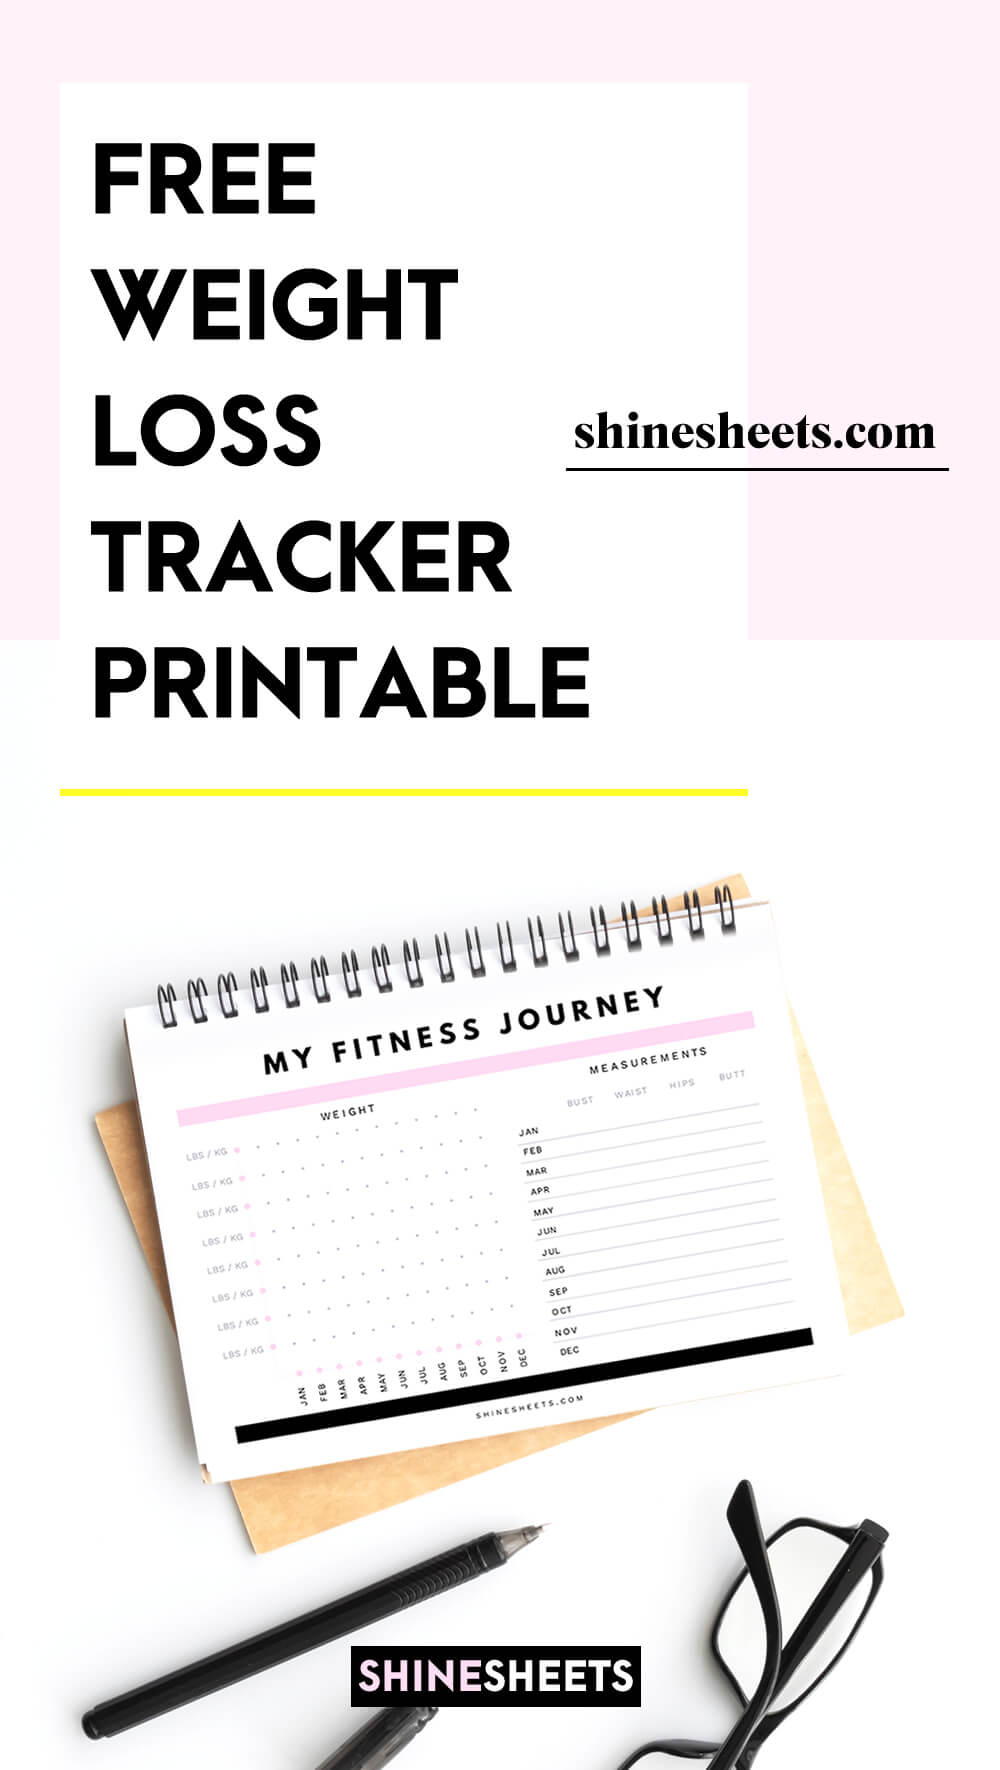 weight loss tracker printable on the desk